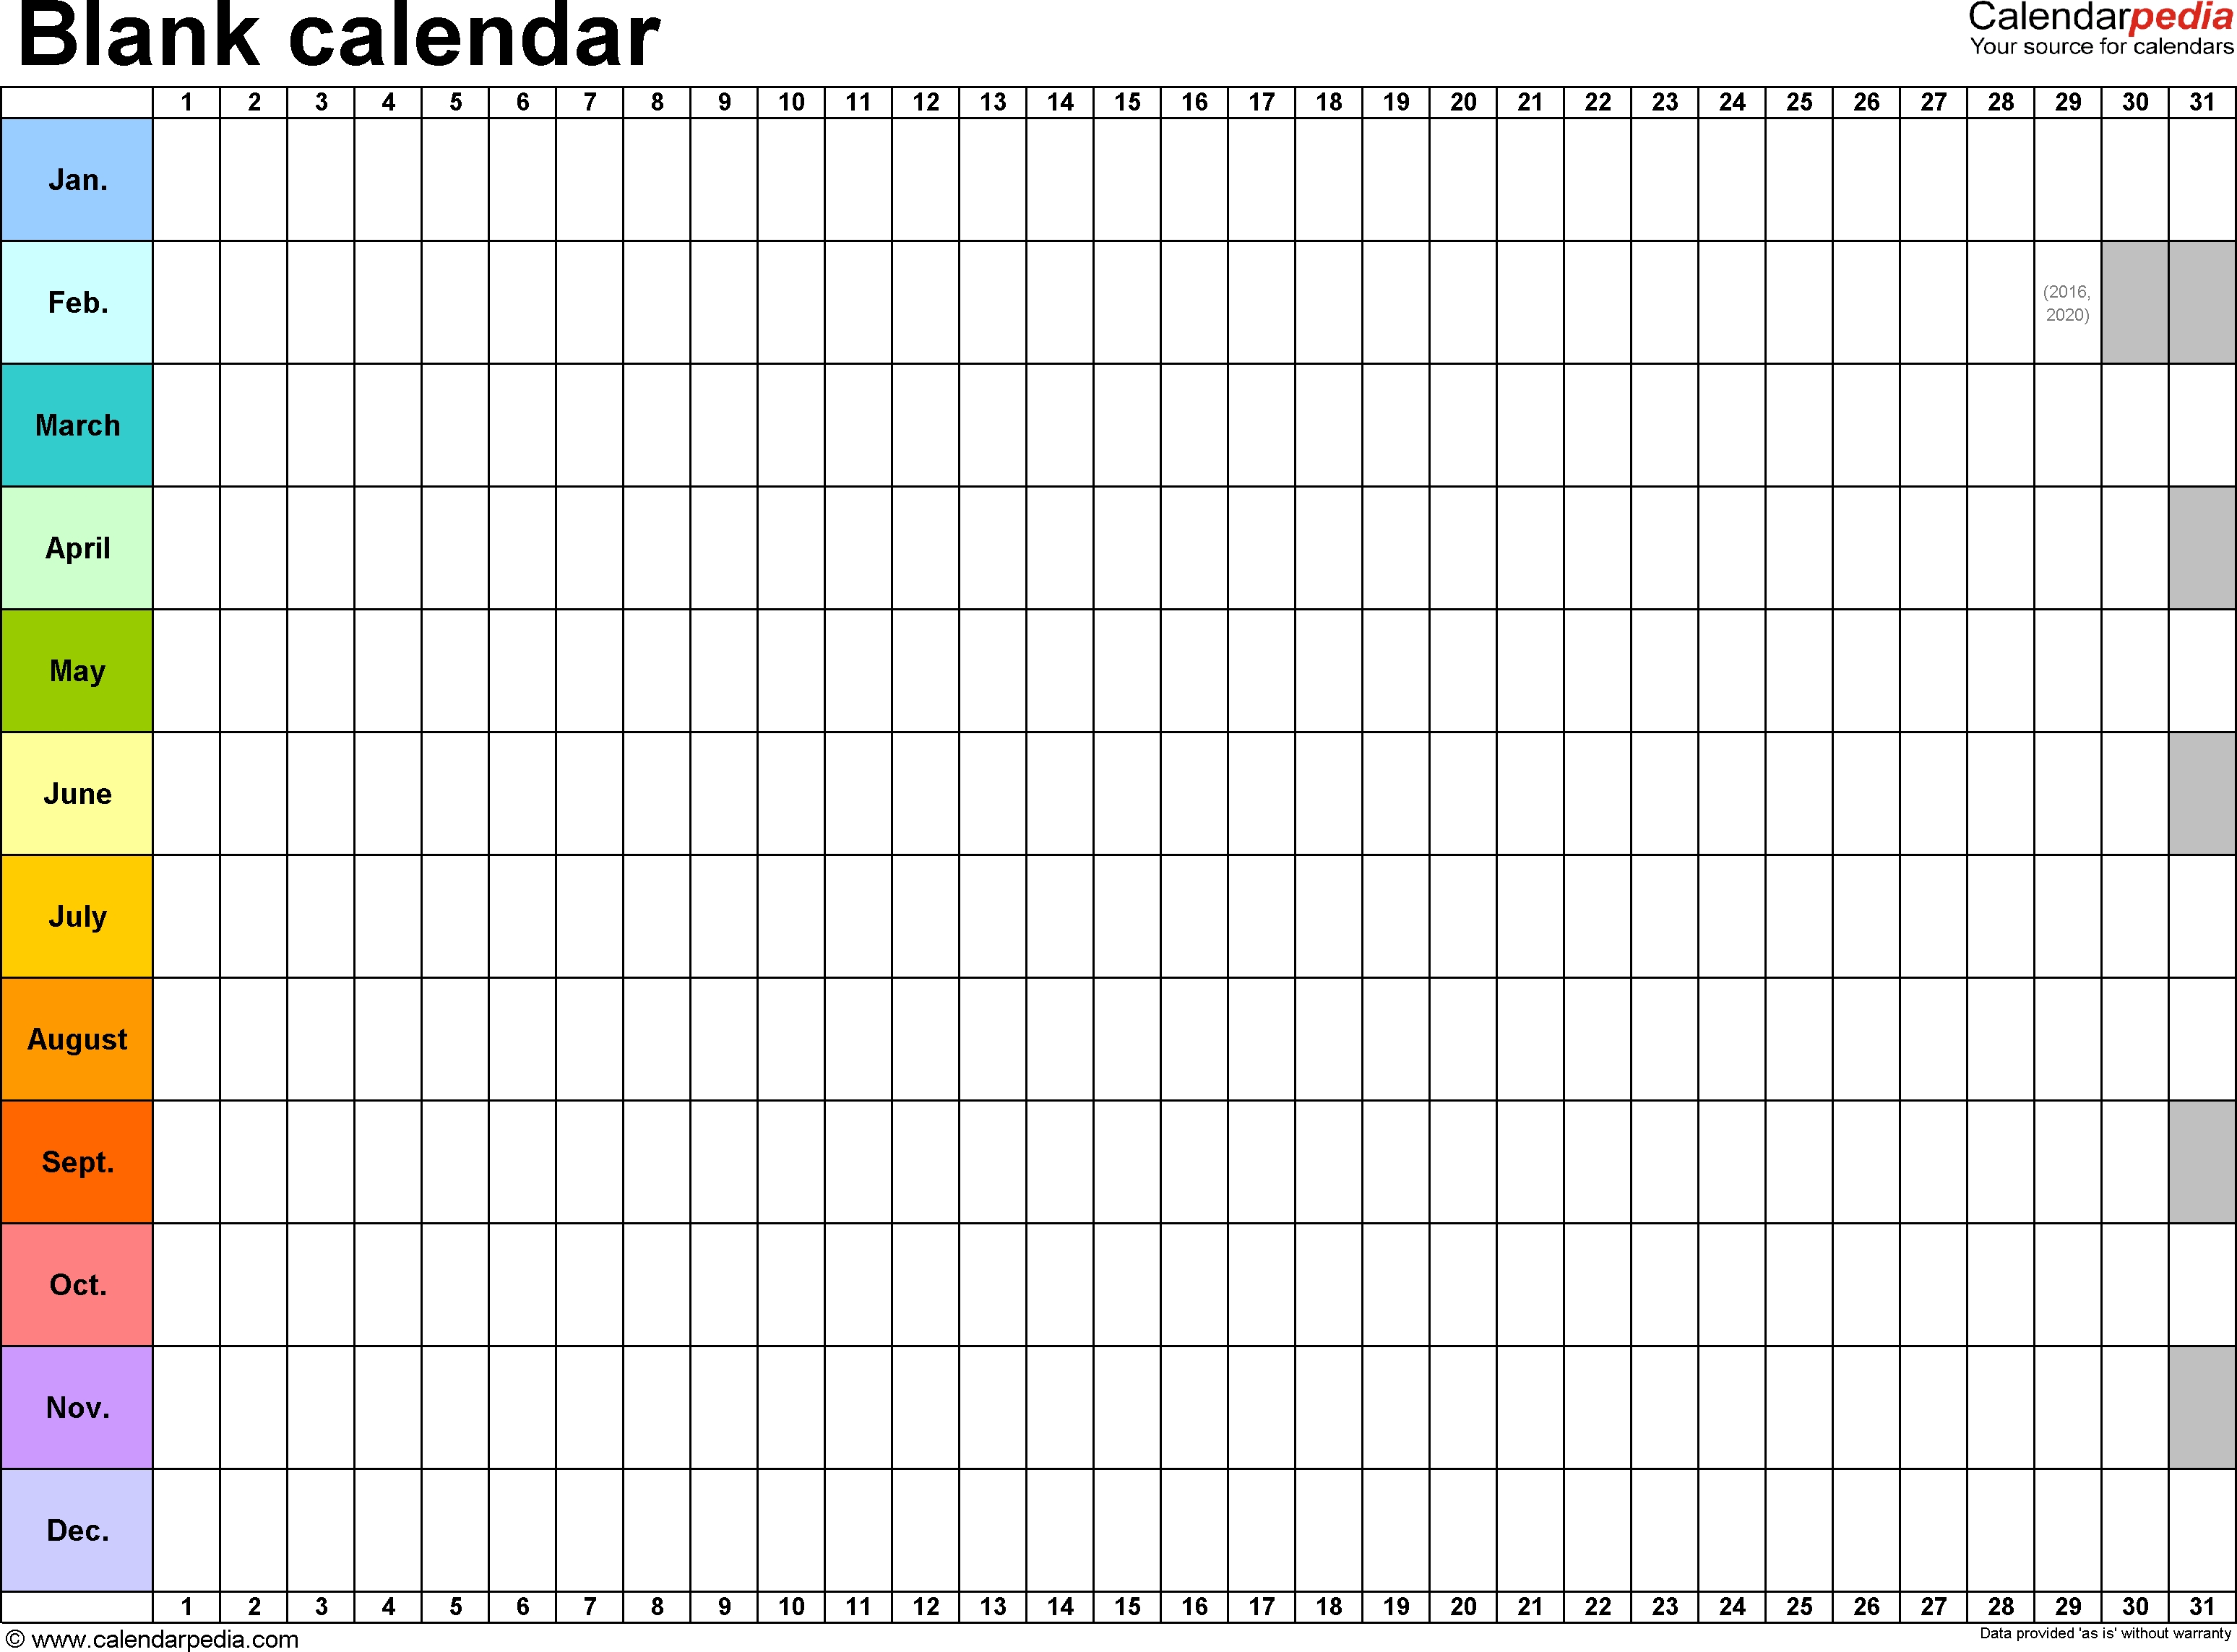 Blank Calendar - 9 Free Printable Microsoft Word Templates for Free Calendars To Print Without Downloading